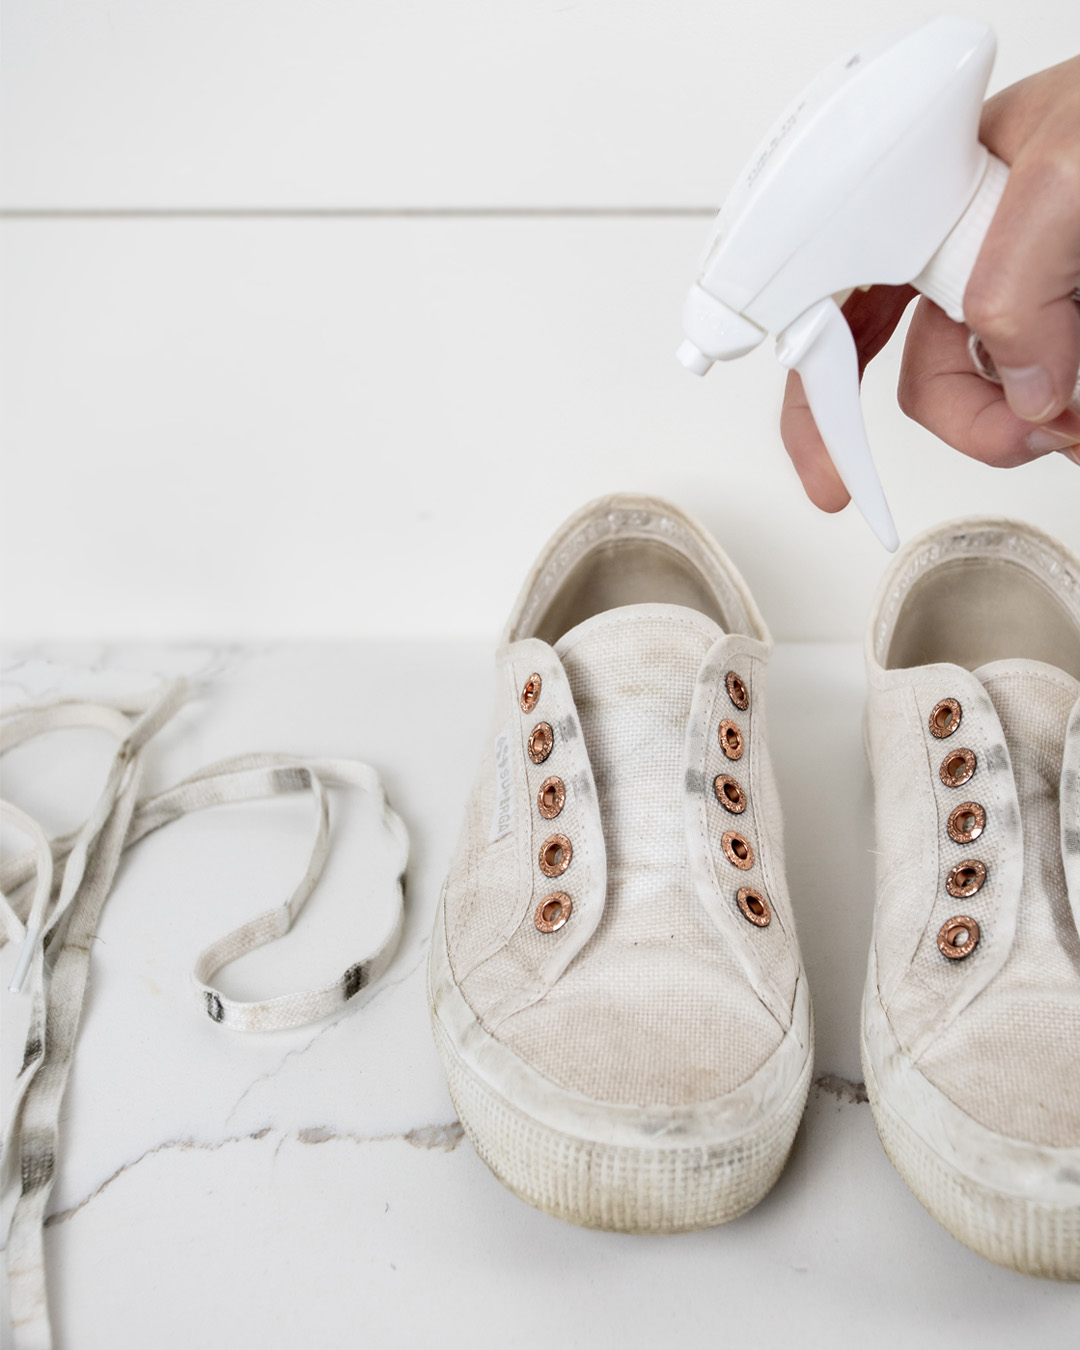 In today's post we'll talk about the most effective way to clean white canvas sneakers and get them back to almost as good as new!